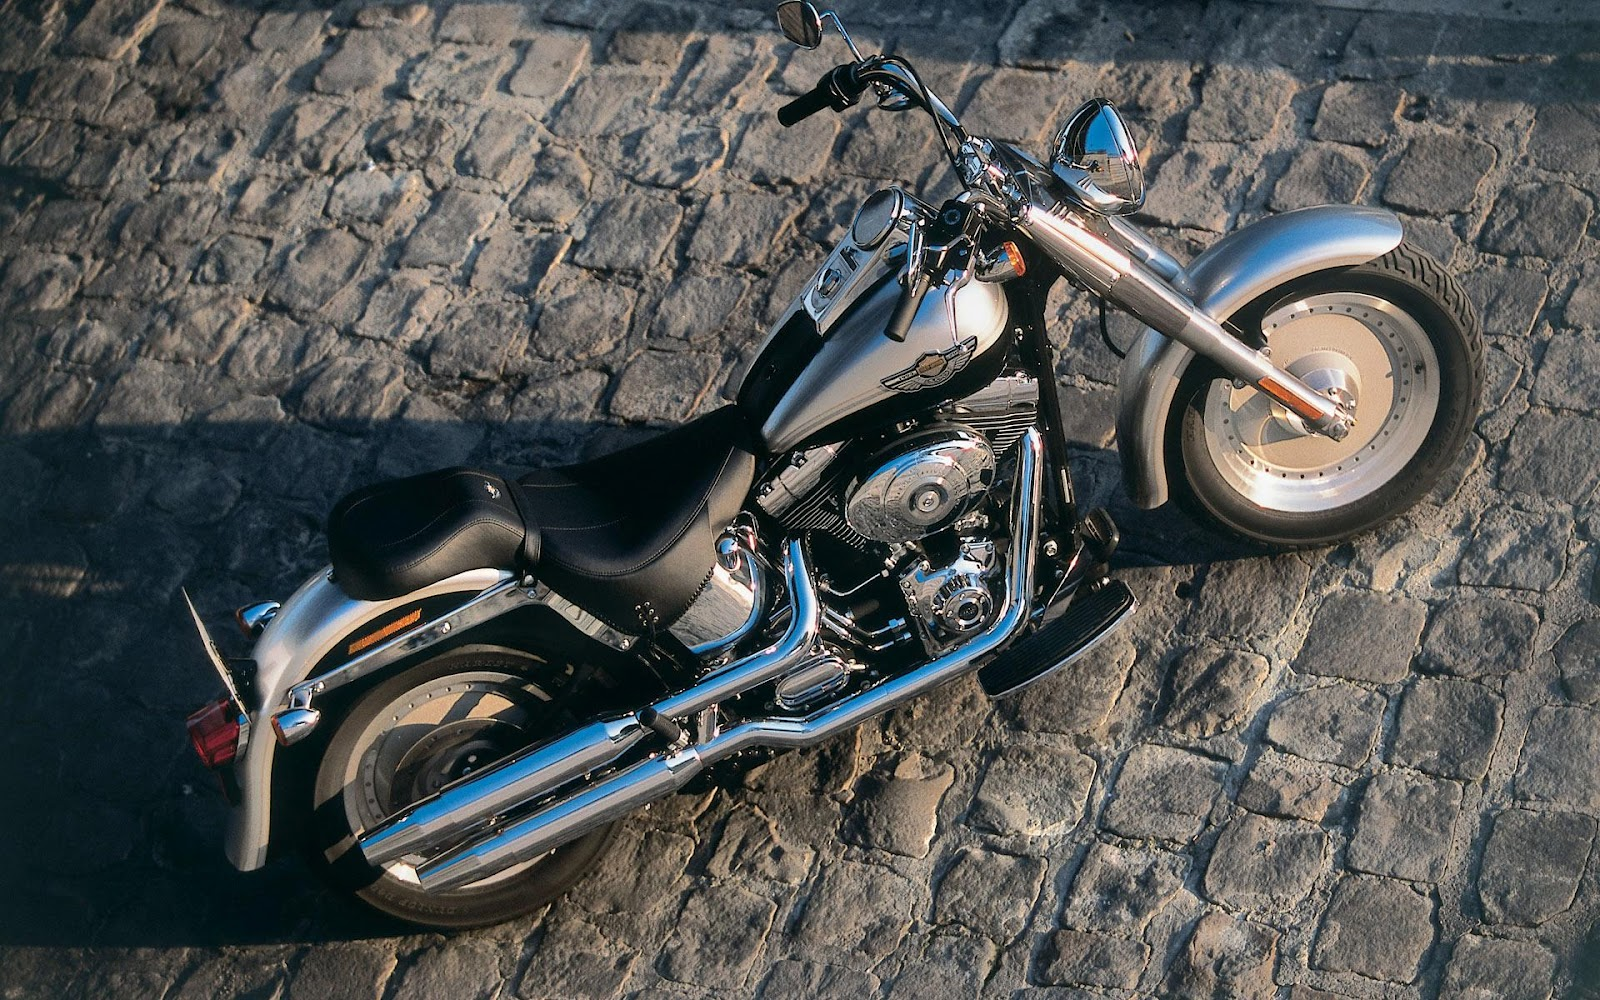 Harley Davidson Latest HD Wallpapers Free Download ~ Full ...